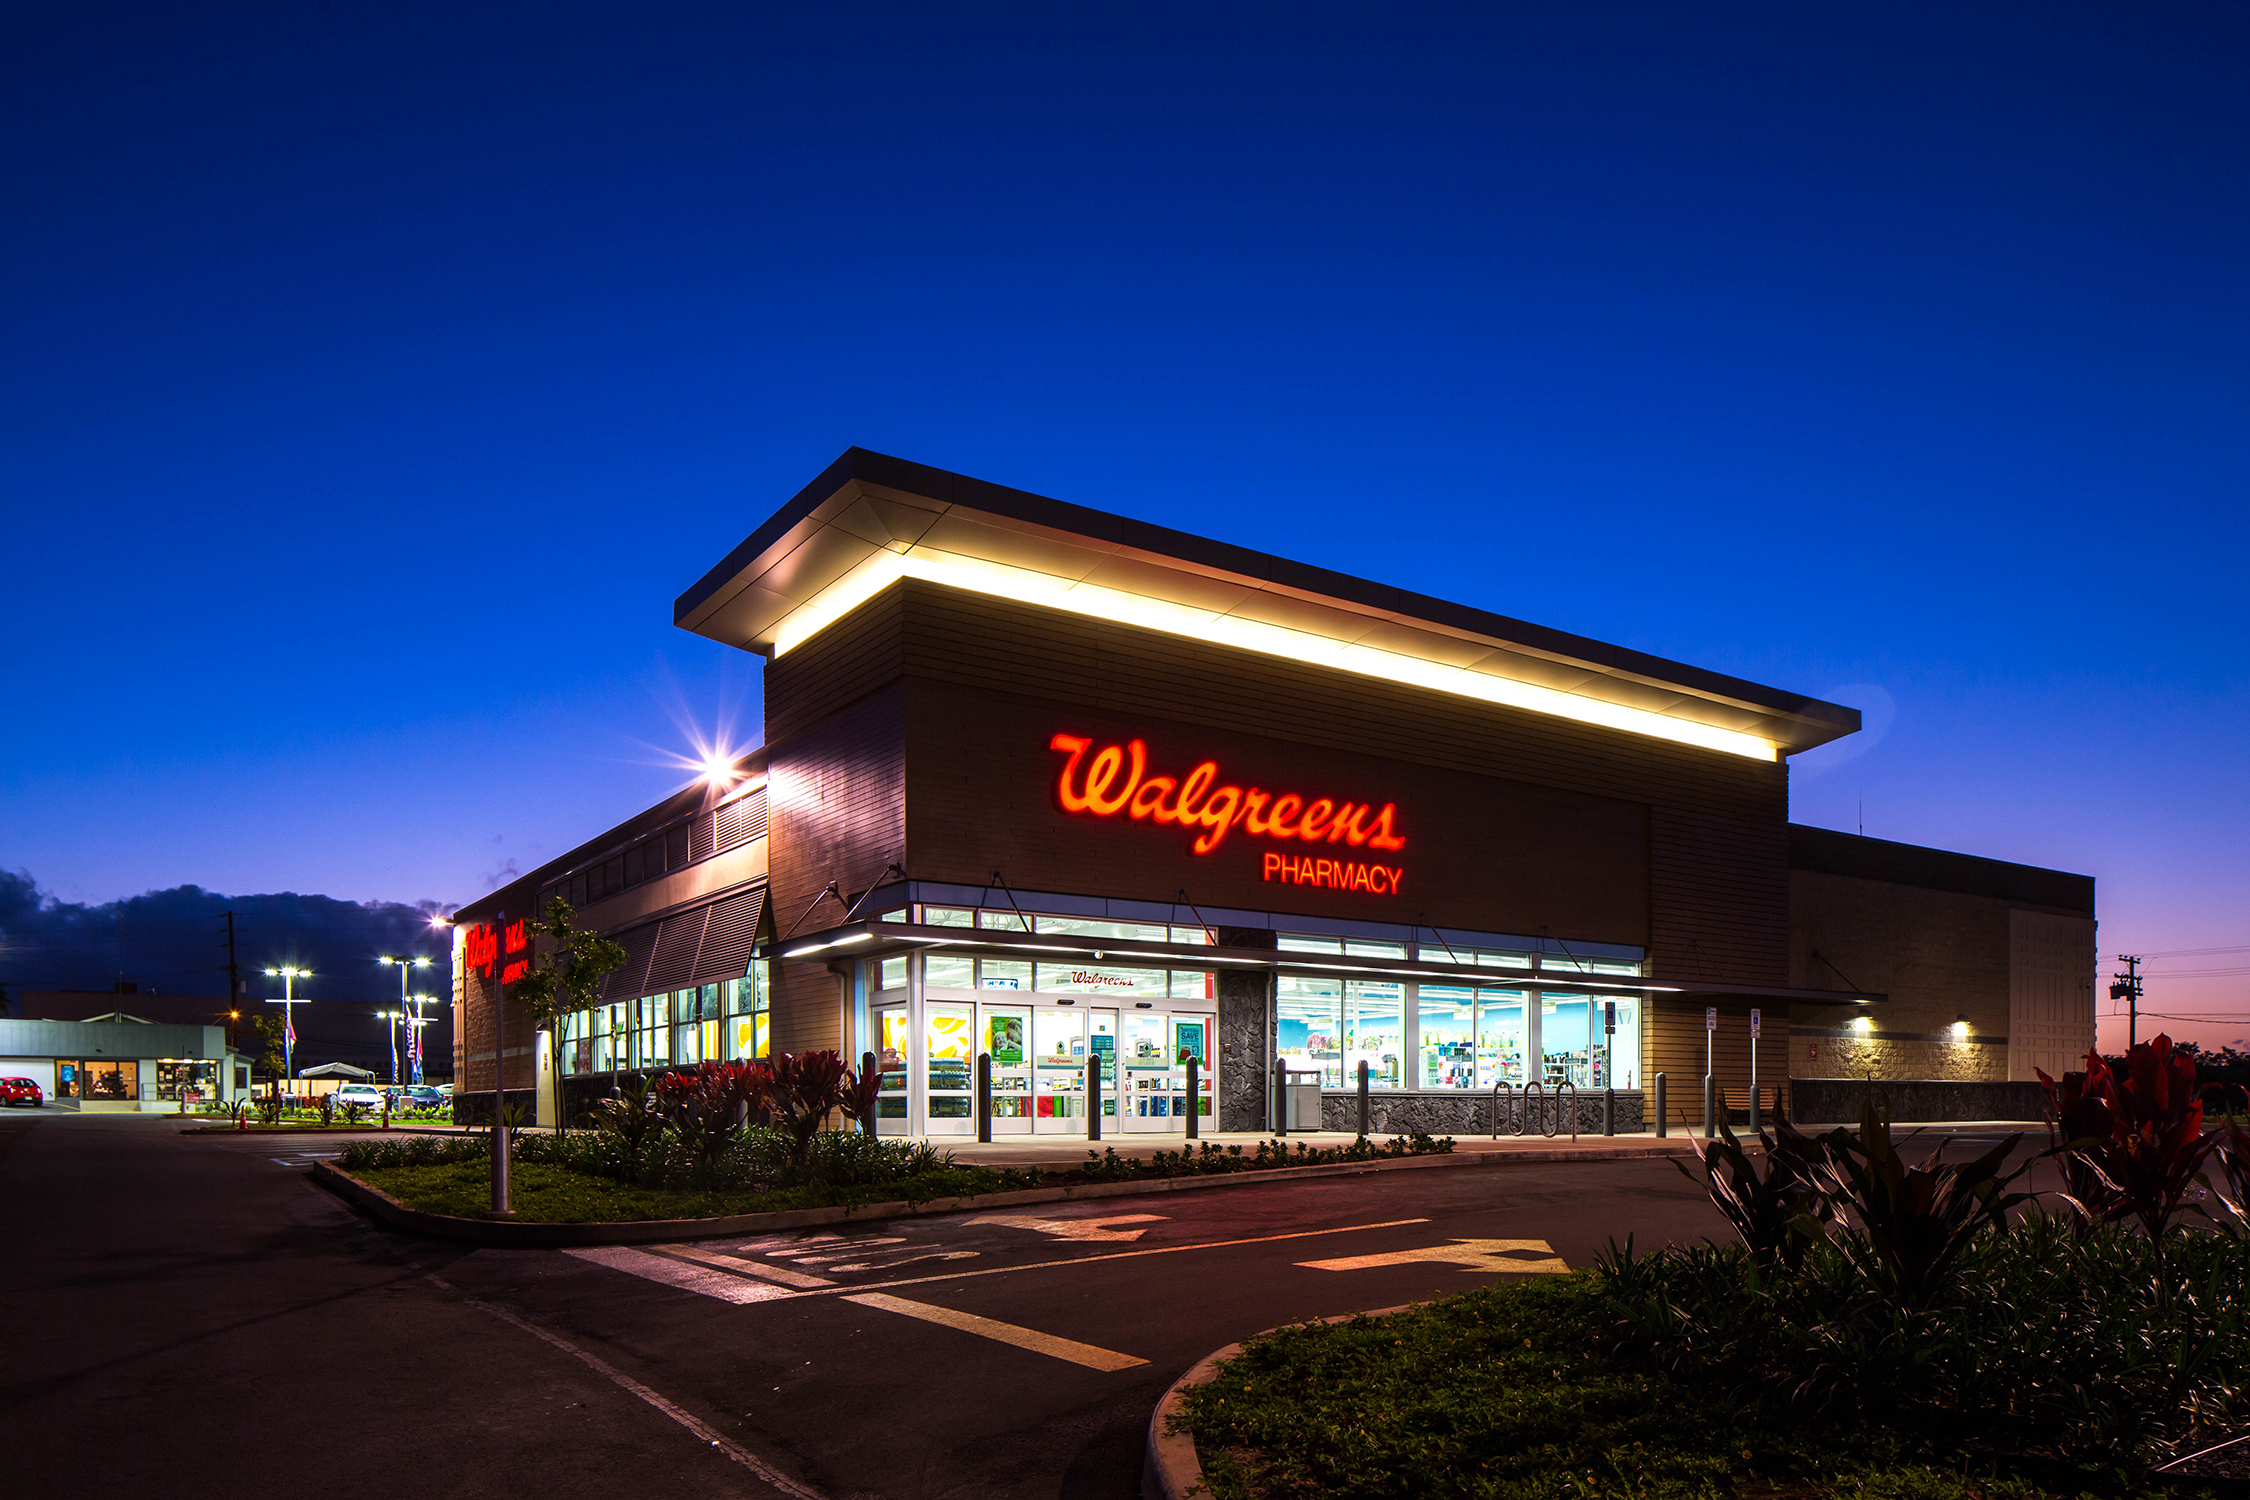 Walgreens Boots Alliance Walgreens Boots Alliance is the first global pharmacy-led, health and wellbeing enterprise. Our purpose is to help people across the world lead healthier and happier lives.